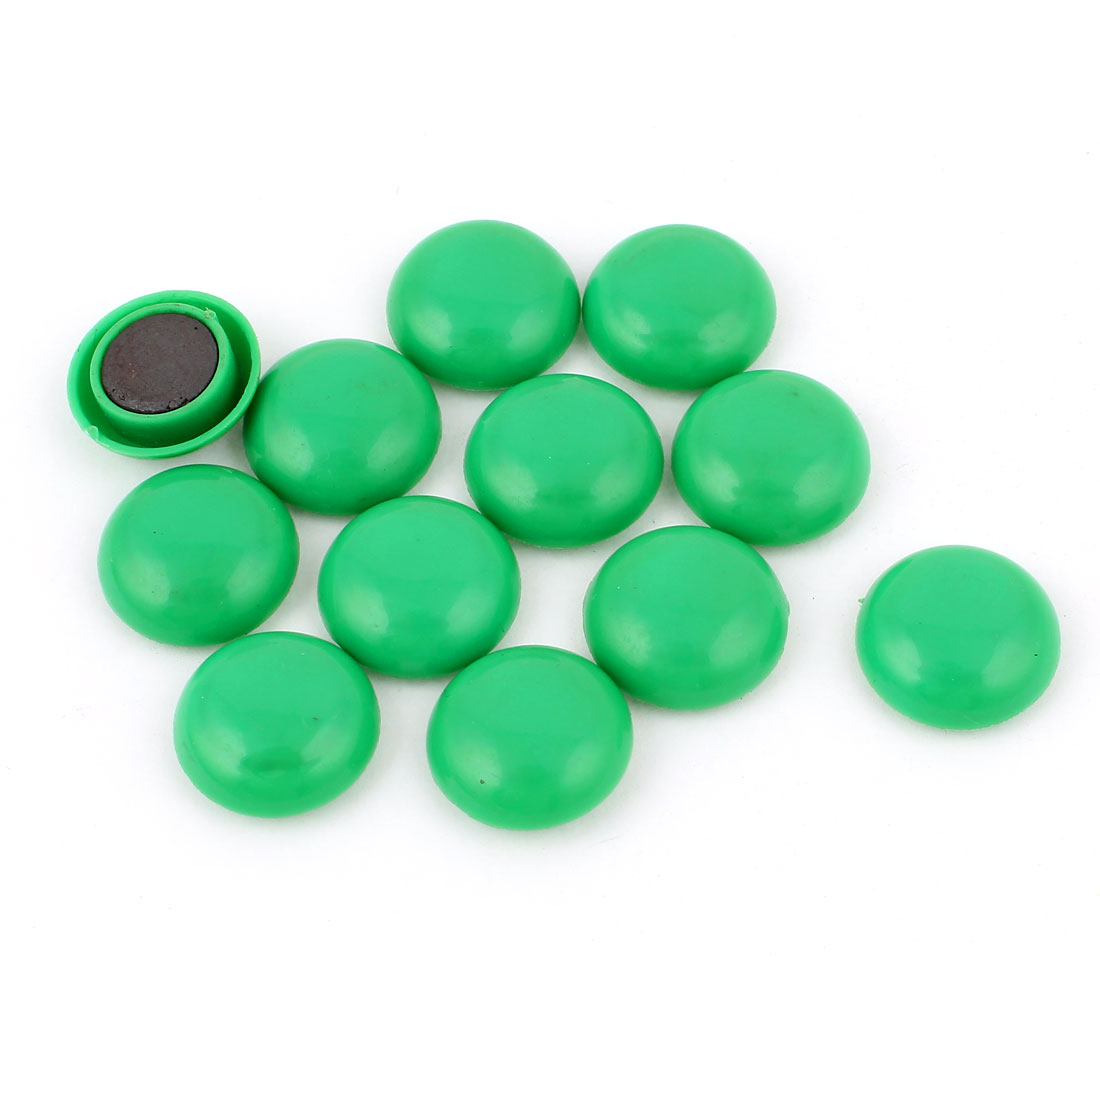 Home Office Round Green Blackboard Fridge Magnetic Stickers 12Pcs